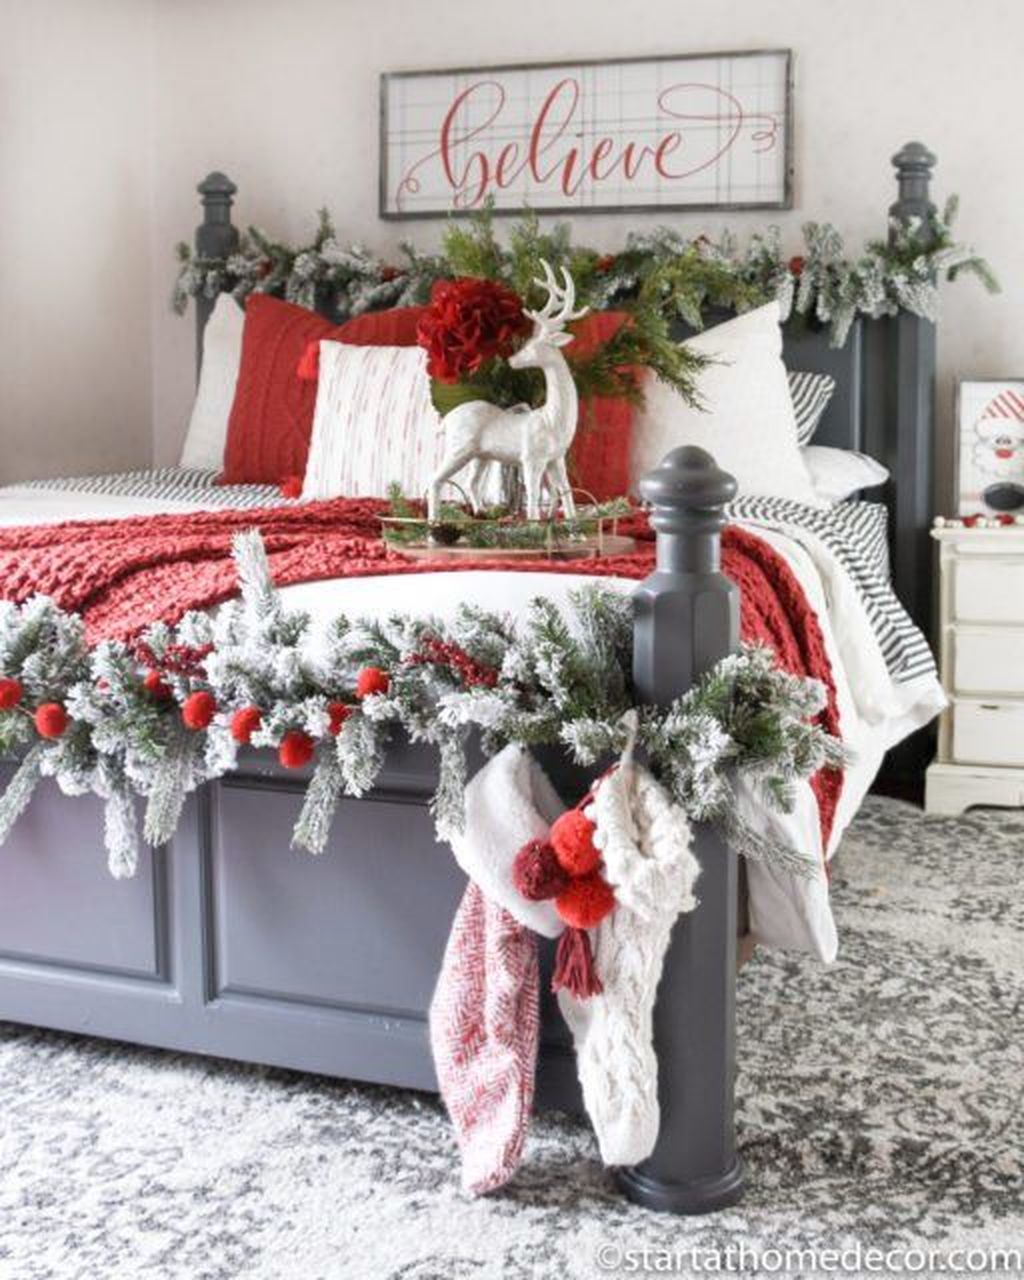 Cute Homes Decor Ideas To Snuggle In This Winter 13